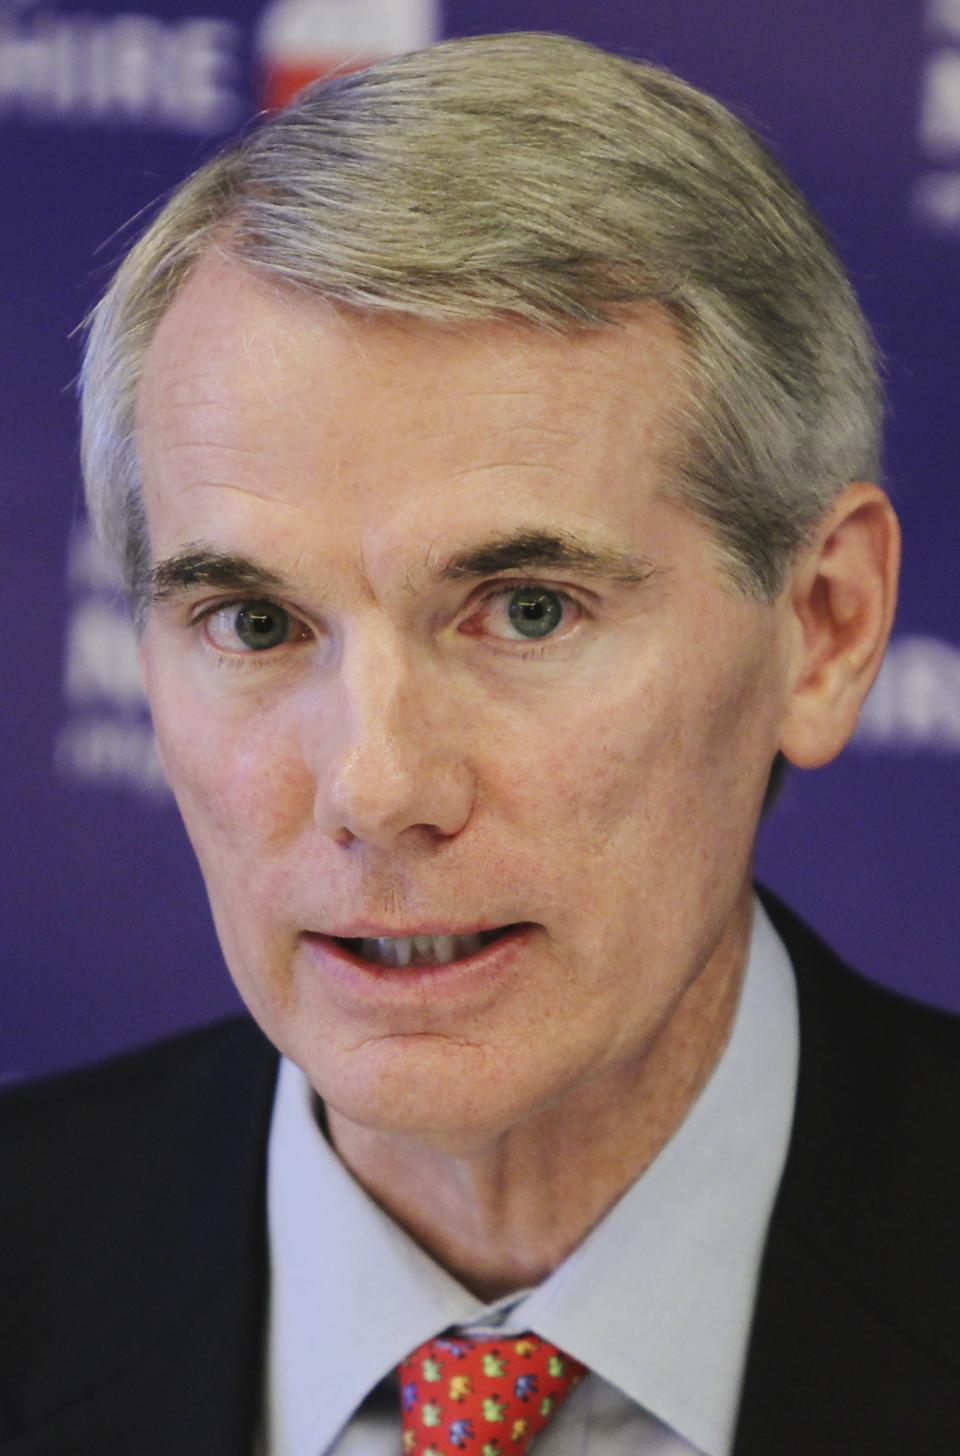 Sen. Rob Portman, R-Ohio, speaks at a media roundtable hosted by the New Hampshire Republican Party, Saturday, July 7, 2012, in Concord, N.H. (AP Photo/Cheryl Senter)